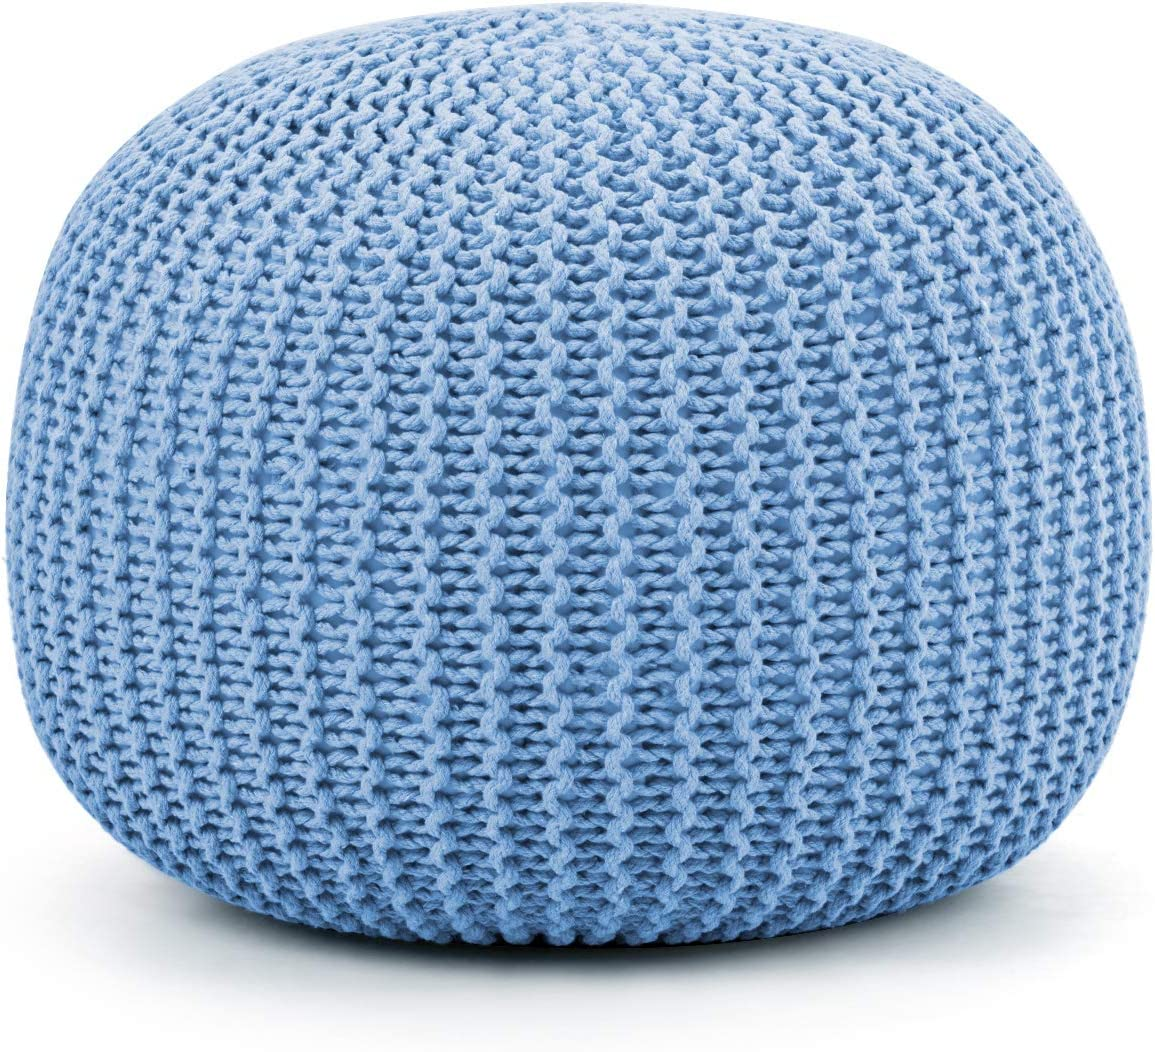 Giantex Pouf Round Knitted Hand Max Max 70% OFF 49% OFF Dori Cable C Handmade W